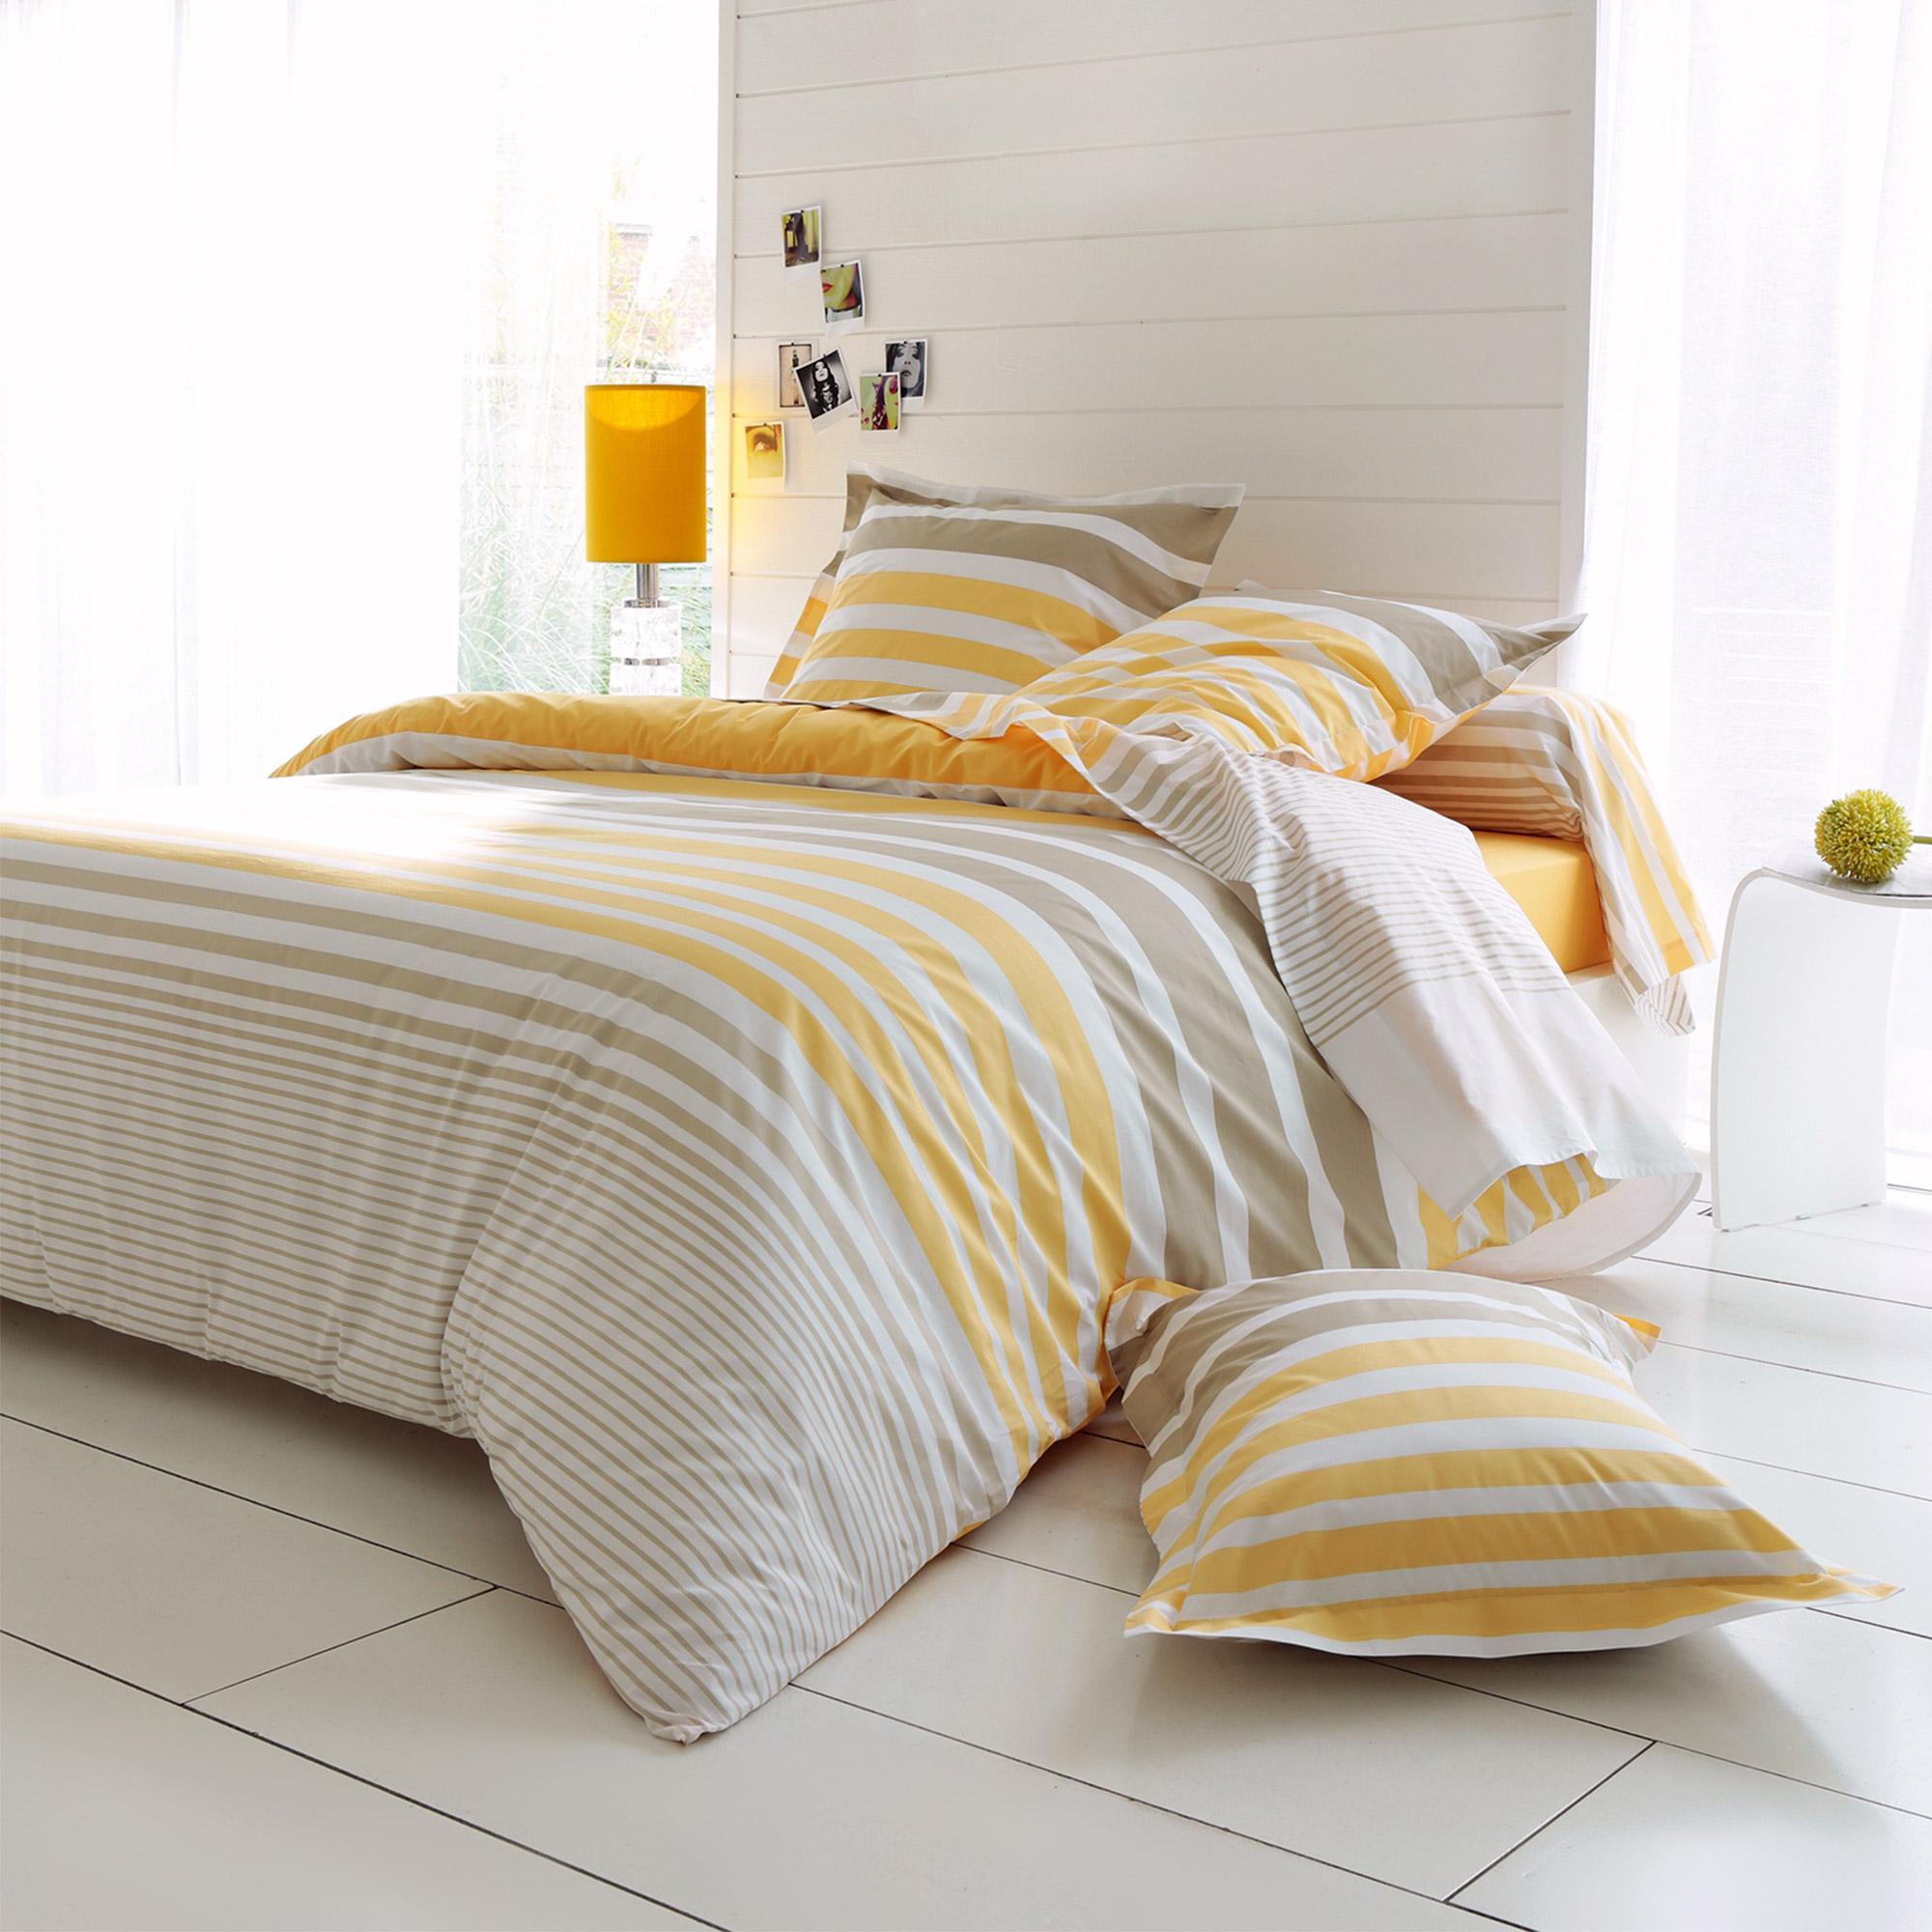 parure de lit 140x200 percale pur coton stripe narcisse jaune 2 pi ces eur 62 05 picclick fr. Black Bedroom Furniture Sets. Home Design Ideas